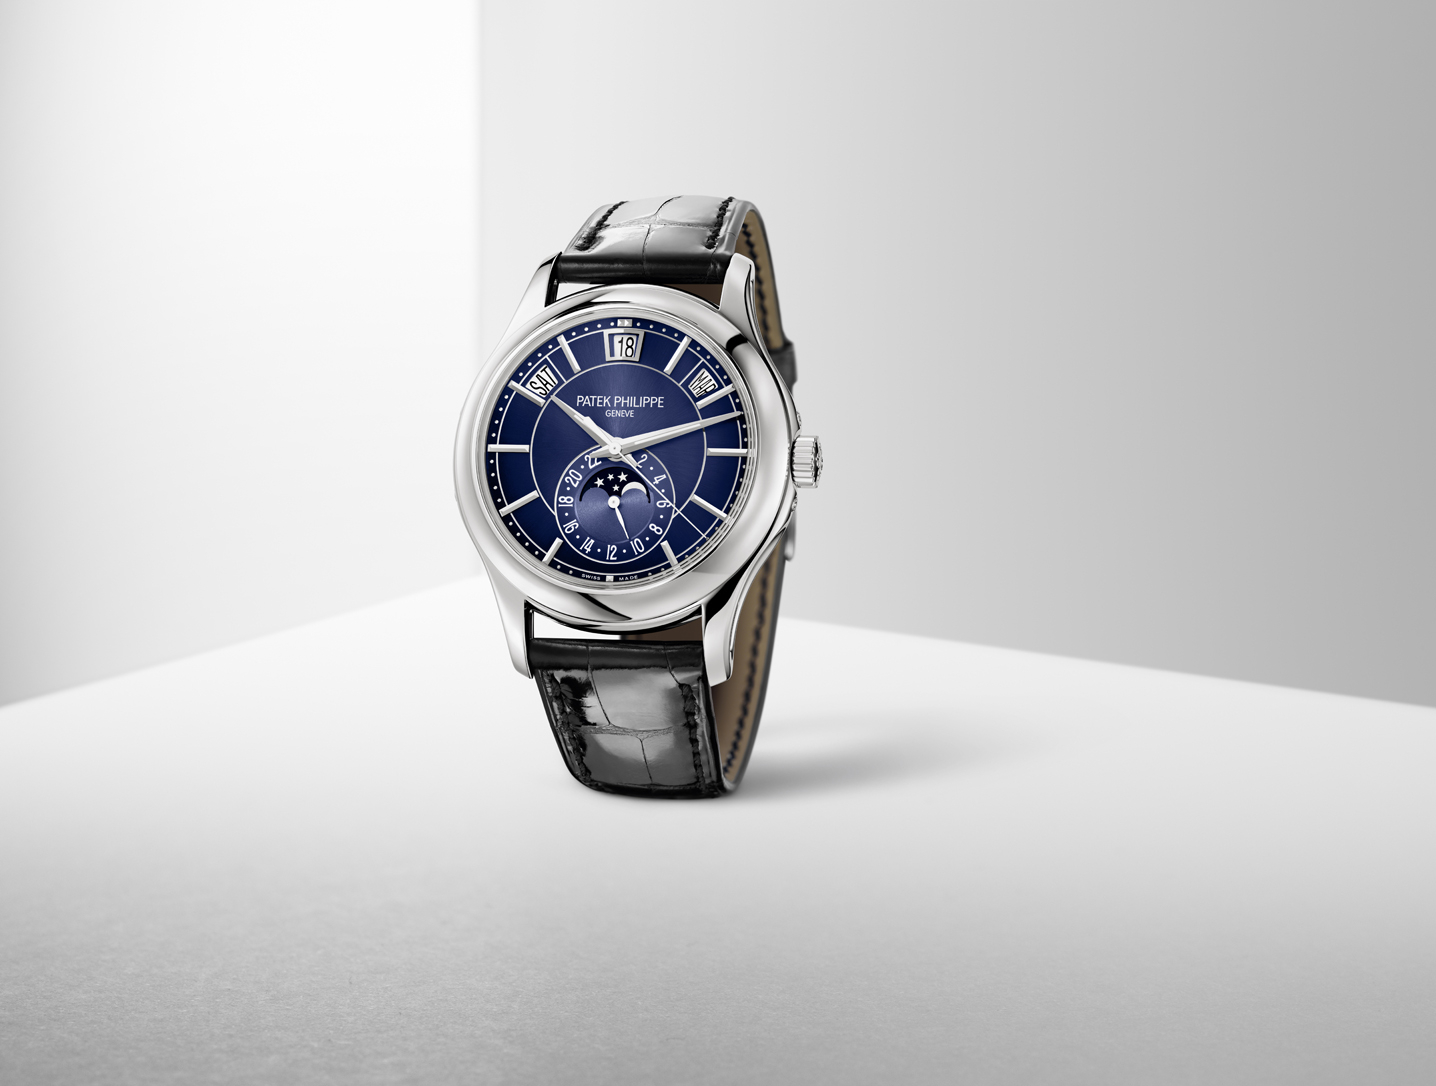 Complication - 5205G-013 - 5205G-013